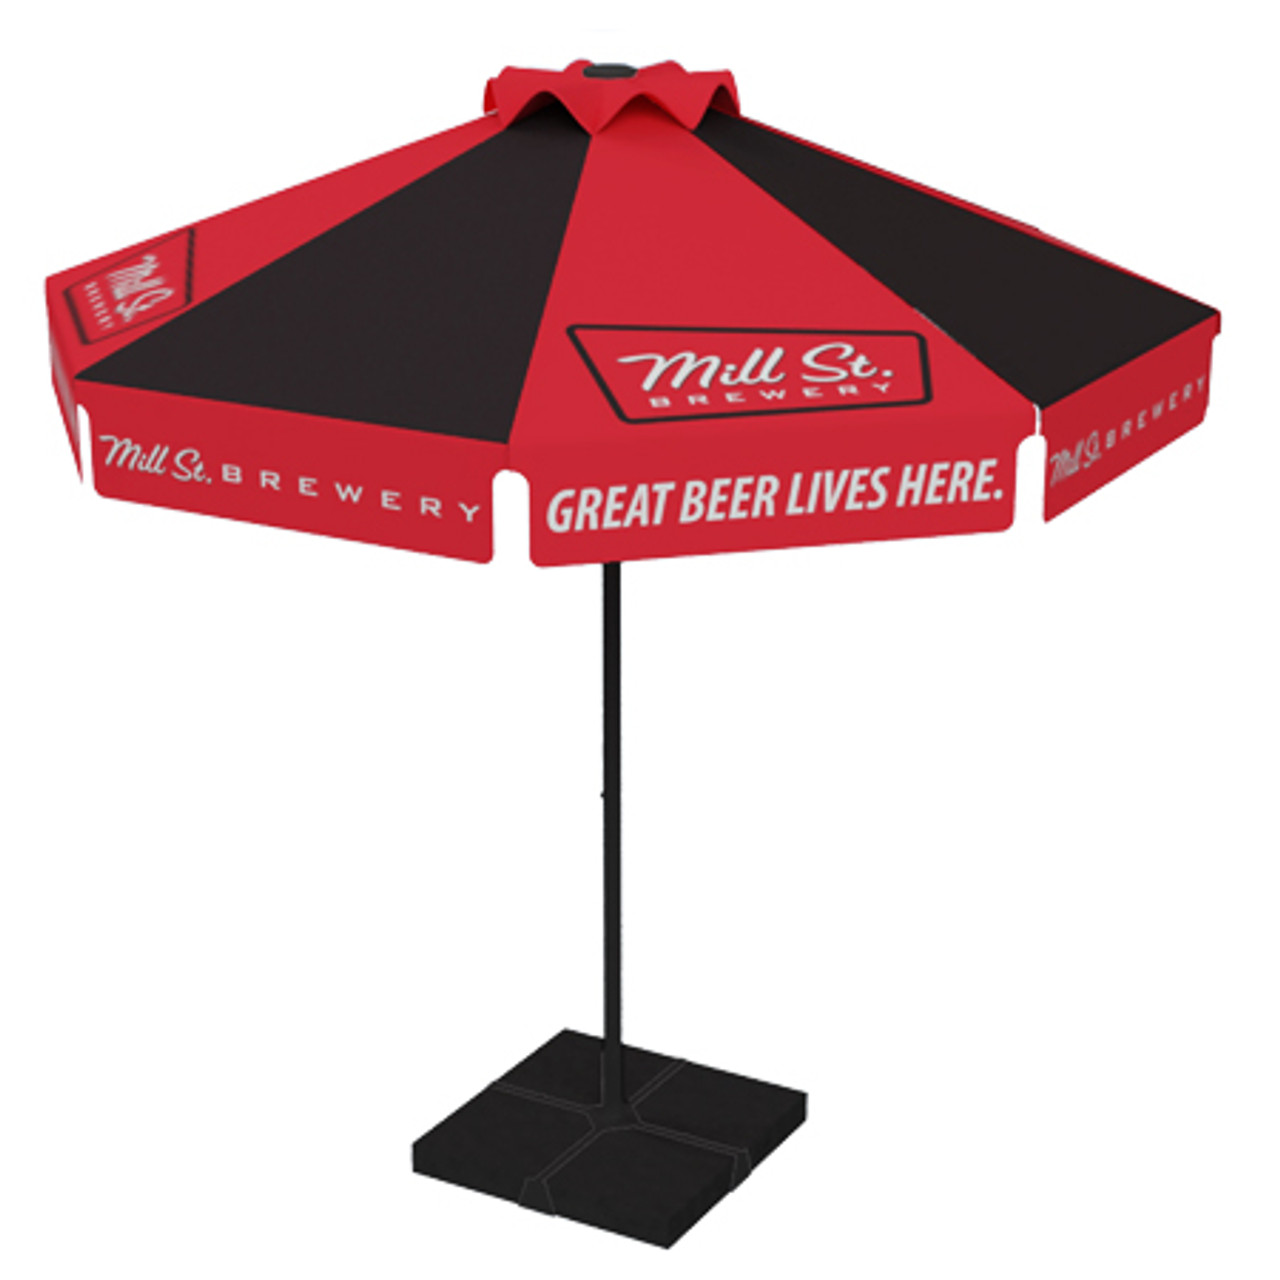 Mill St Brewery Umbrella - UBC Group